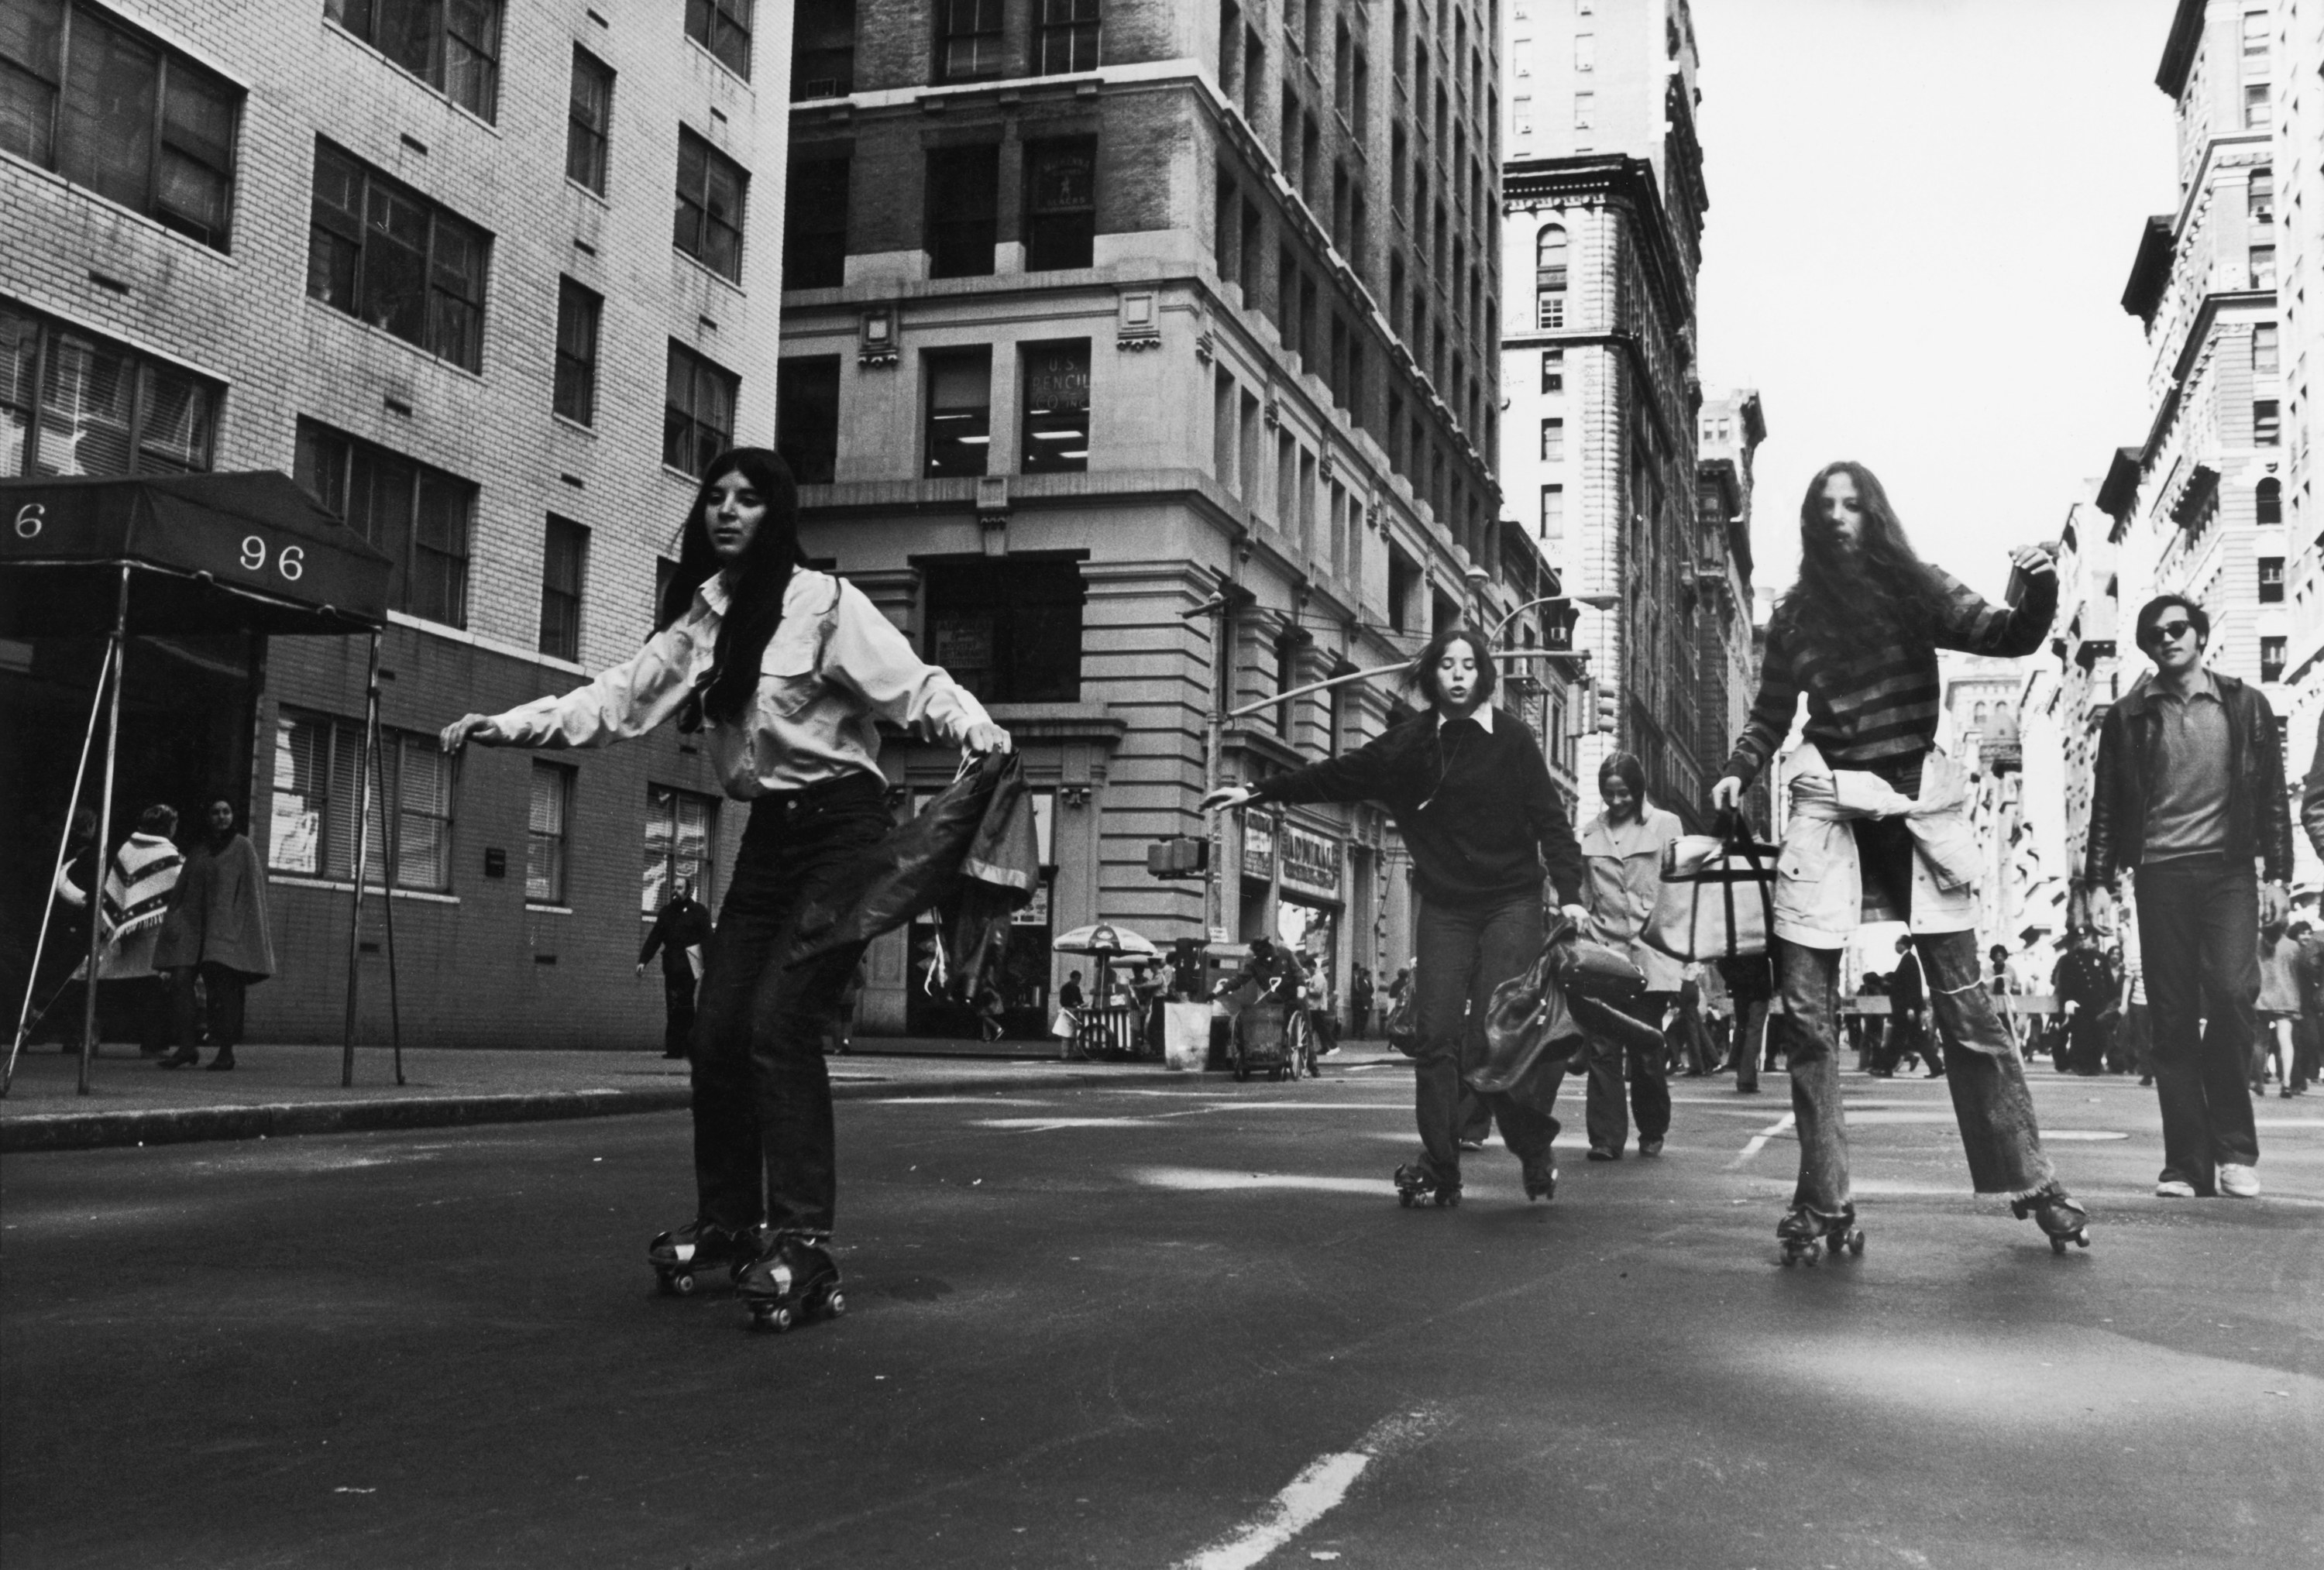 A group of people roller-skate down an empty street in 1970